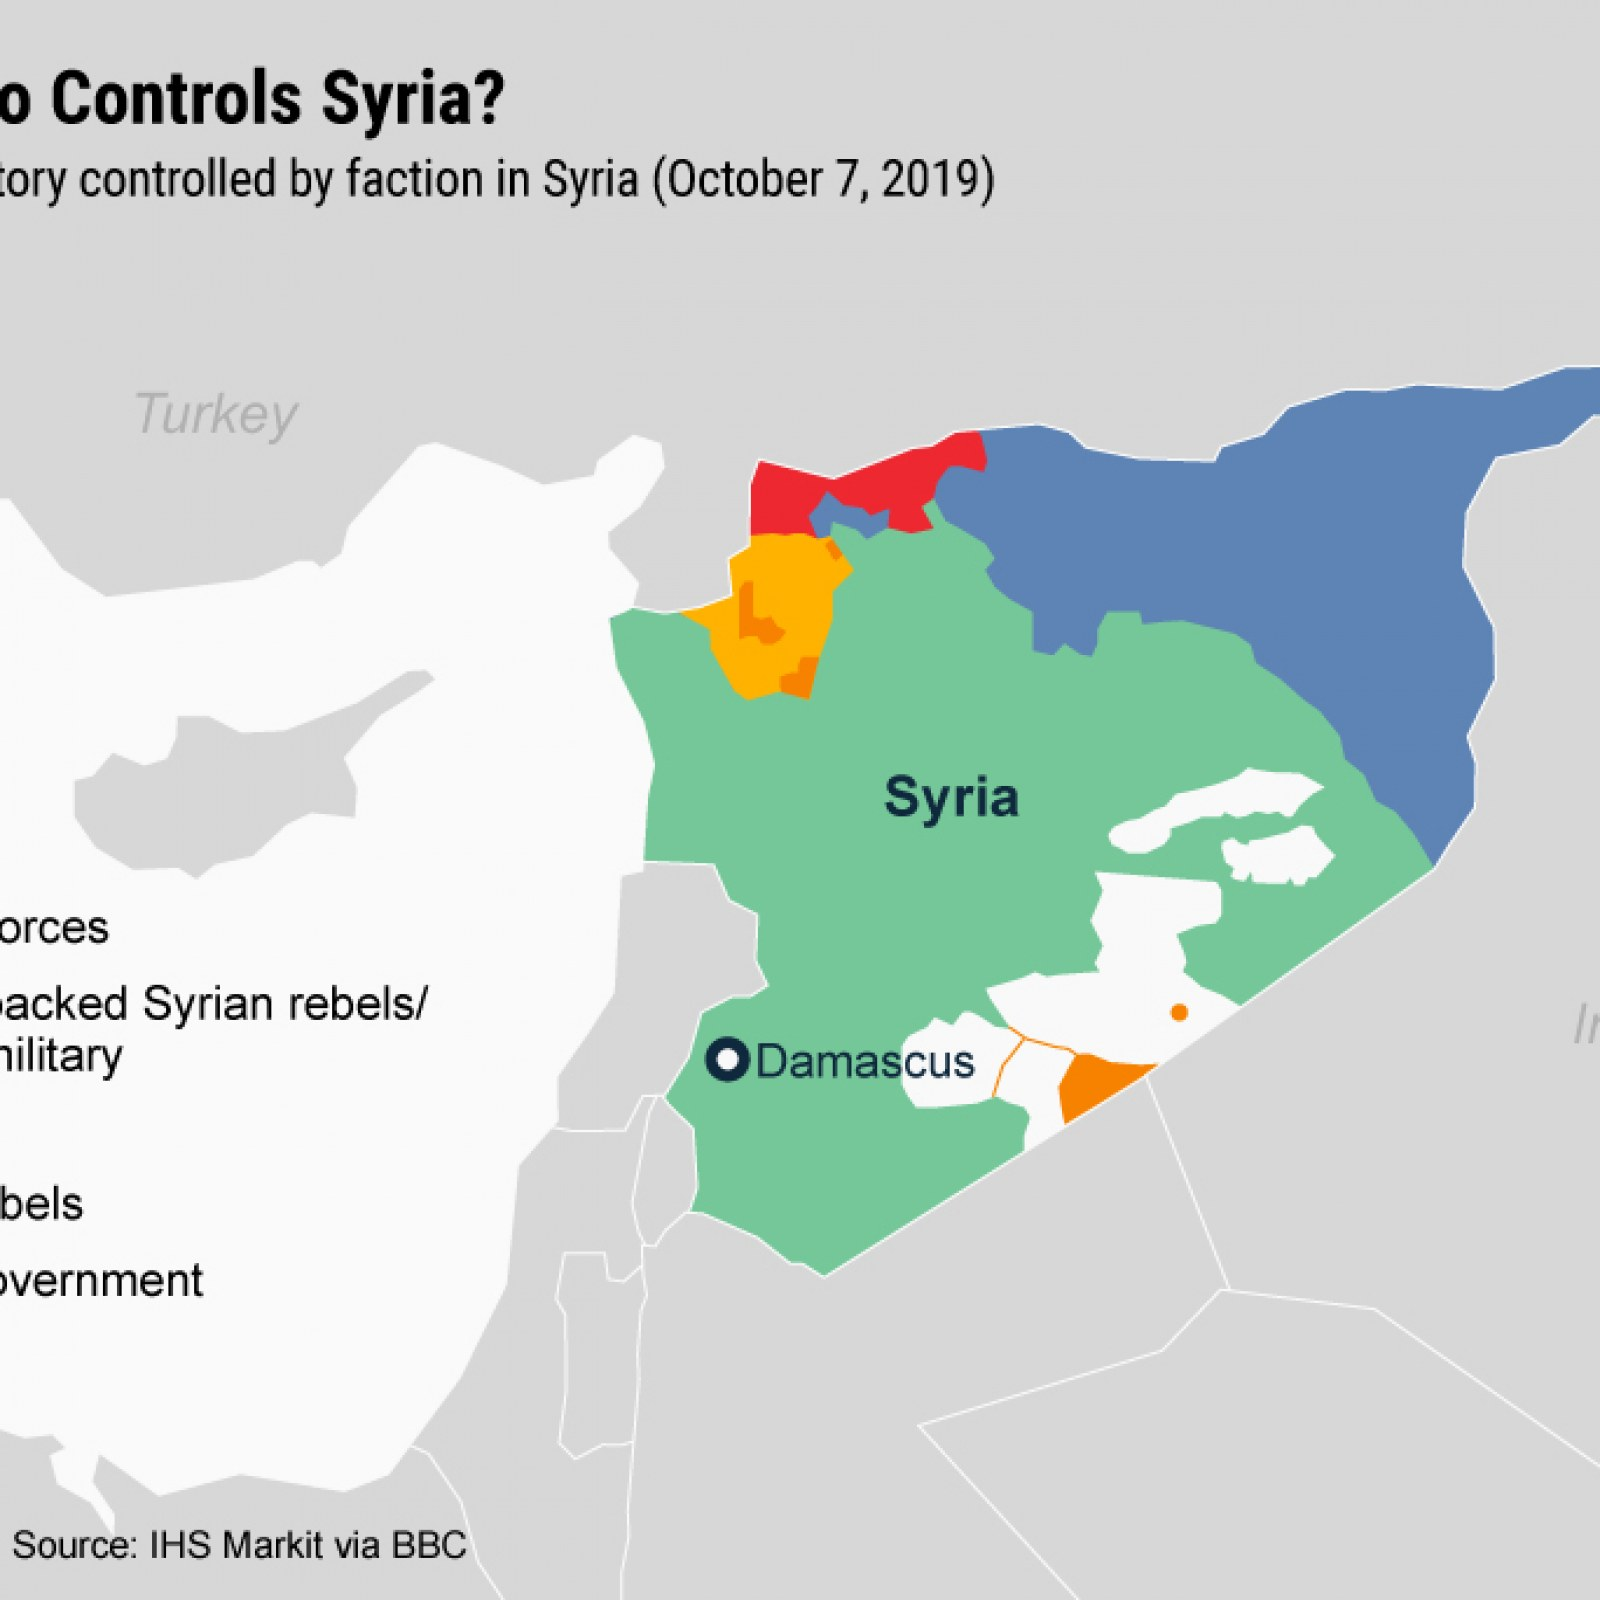 Exclusive: Turkey s US Special Forces in Syria ... on cairo world map, istanbul world map, beirut world map, thebes world map, delhi on world map, ashgabat world map, basra world map, naples world map, mecca world map, middle east map, arabia world map, calicut on world map, harappa world map, algiers world map, samarkand world map, tehran world map, timbuktu world map, jerusalem world map, tripoli world map, palestine world map,